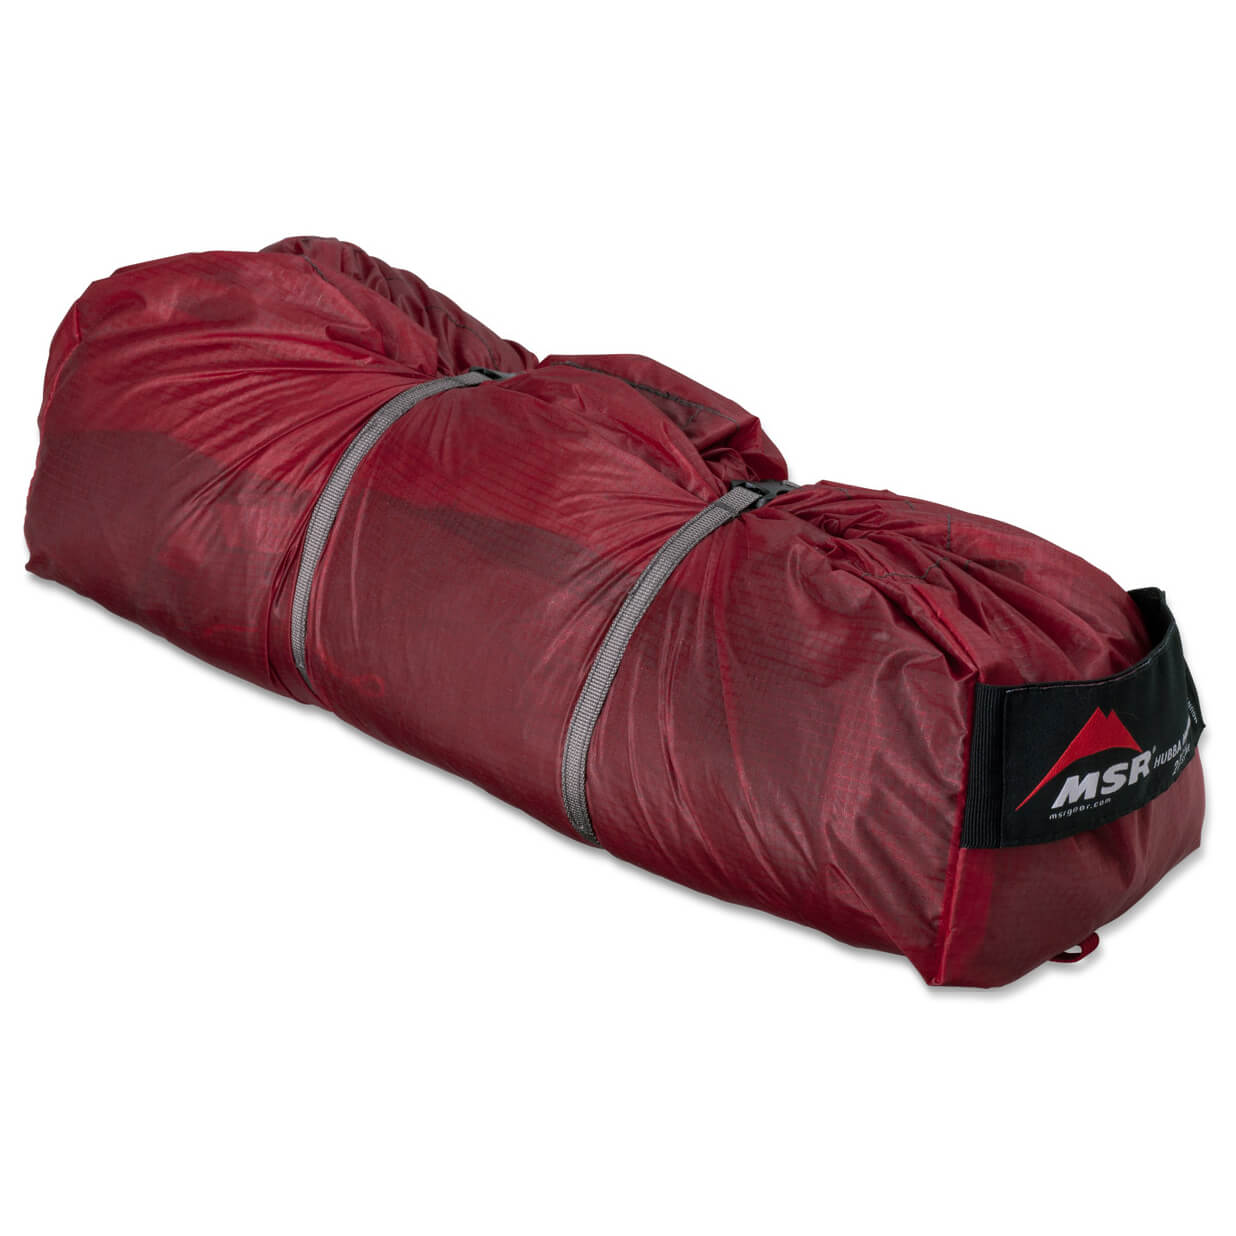 ... MSR - Hubba Hubba NX - 2-person tent ... 774c990ced